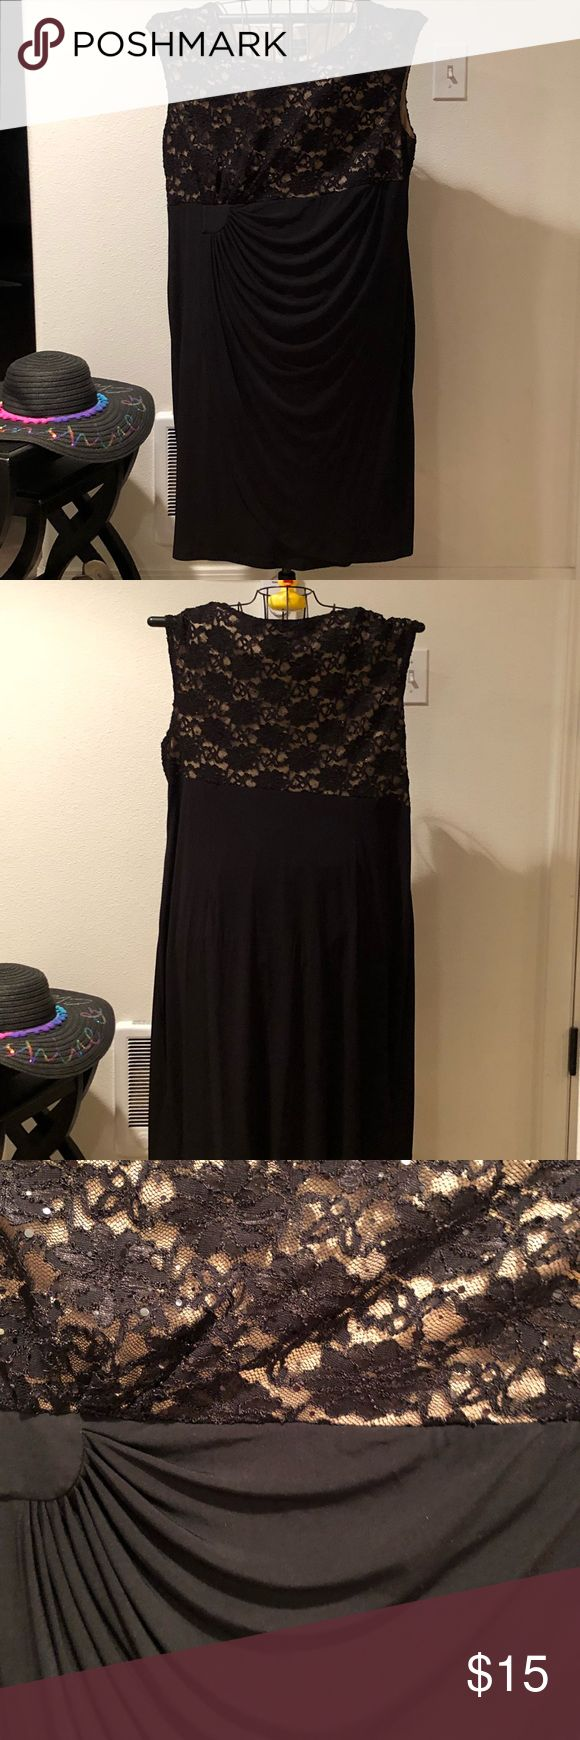 Plus size sleeveless black lace dress Beautiful black lace dress w/nude lined bodice. It is sleeveless & has ruching at the front side. Best of all, it has sparkly sequins w/in the lace. Size 20W. Connented Woman Dresses Midi